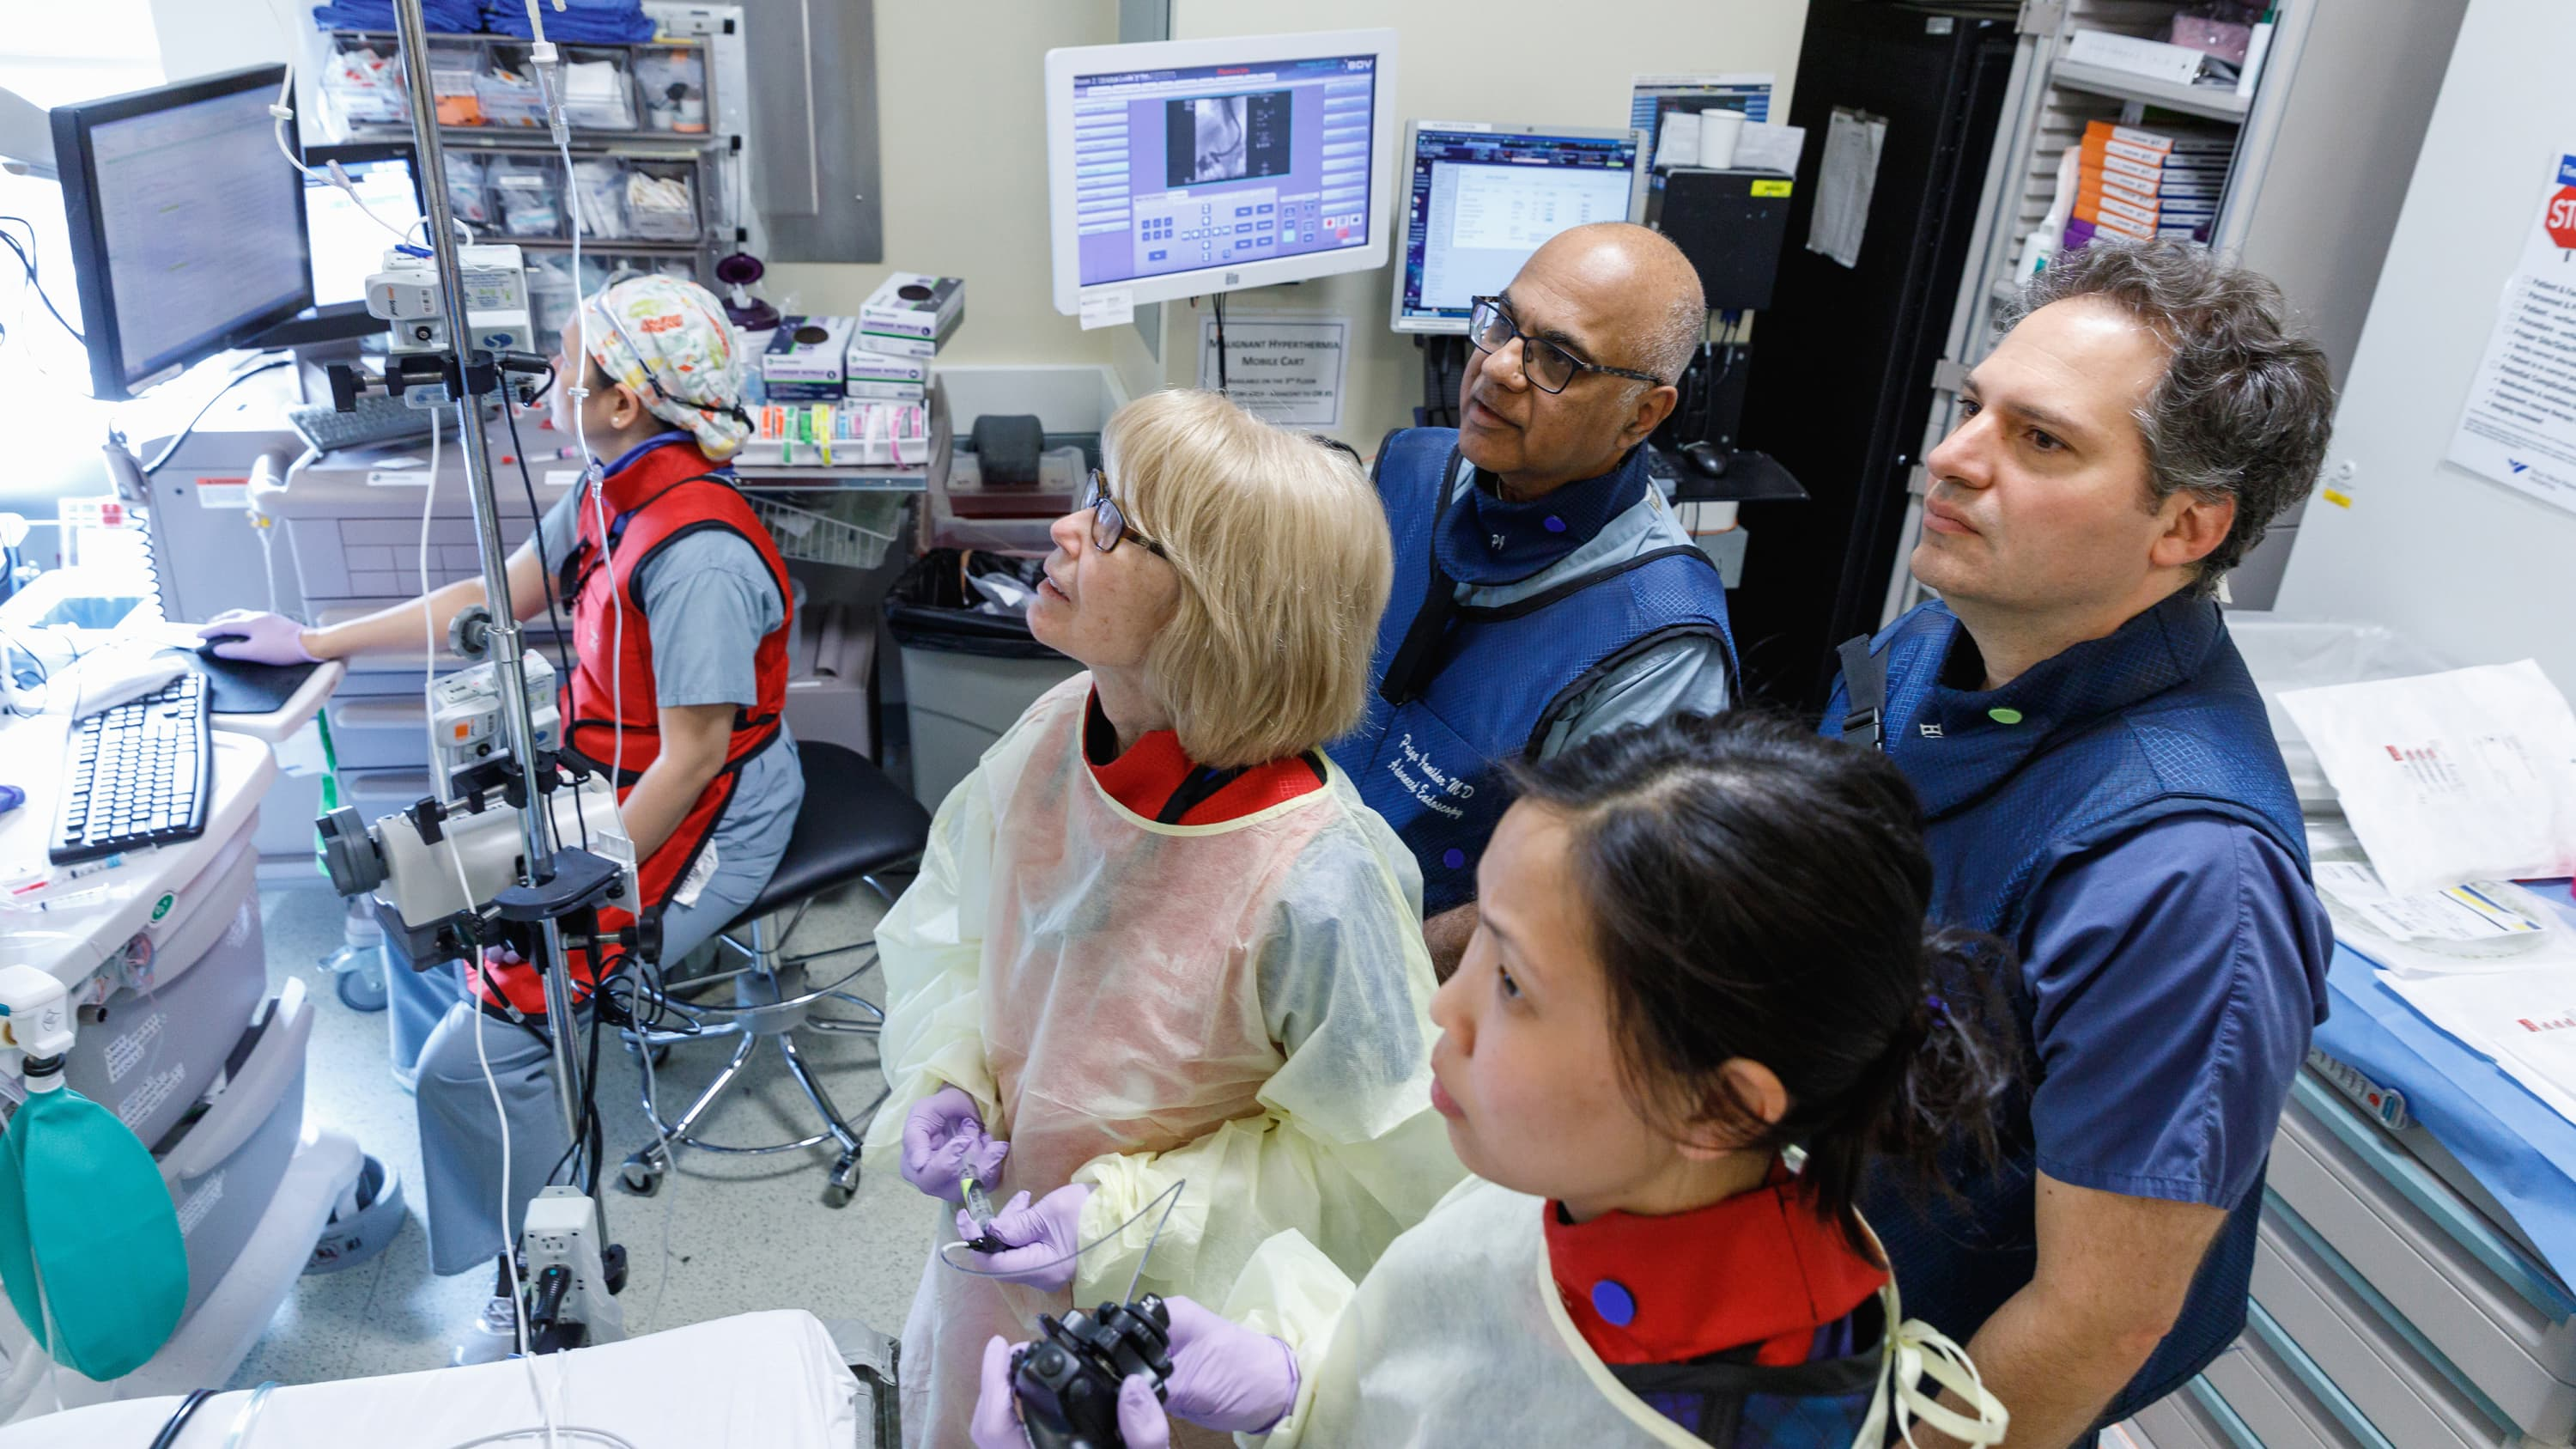 A group of doctor's performing an endoscopic ultrasound look intently in the direction of a screen.